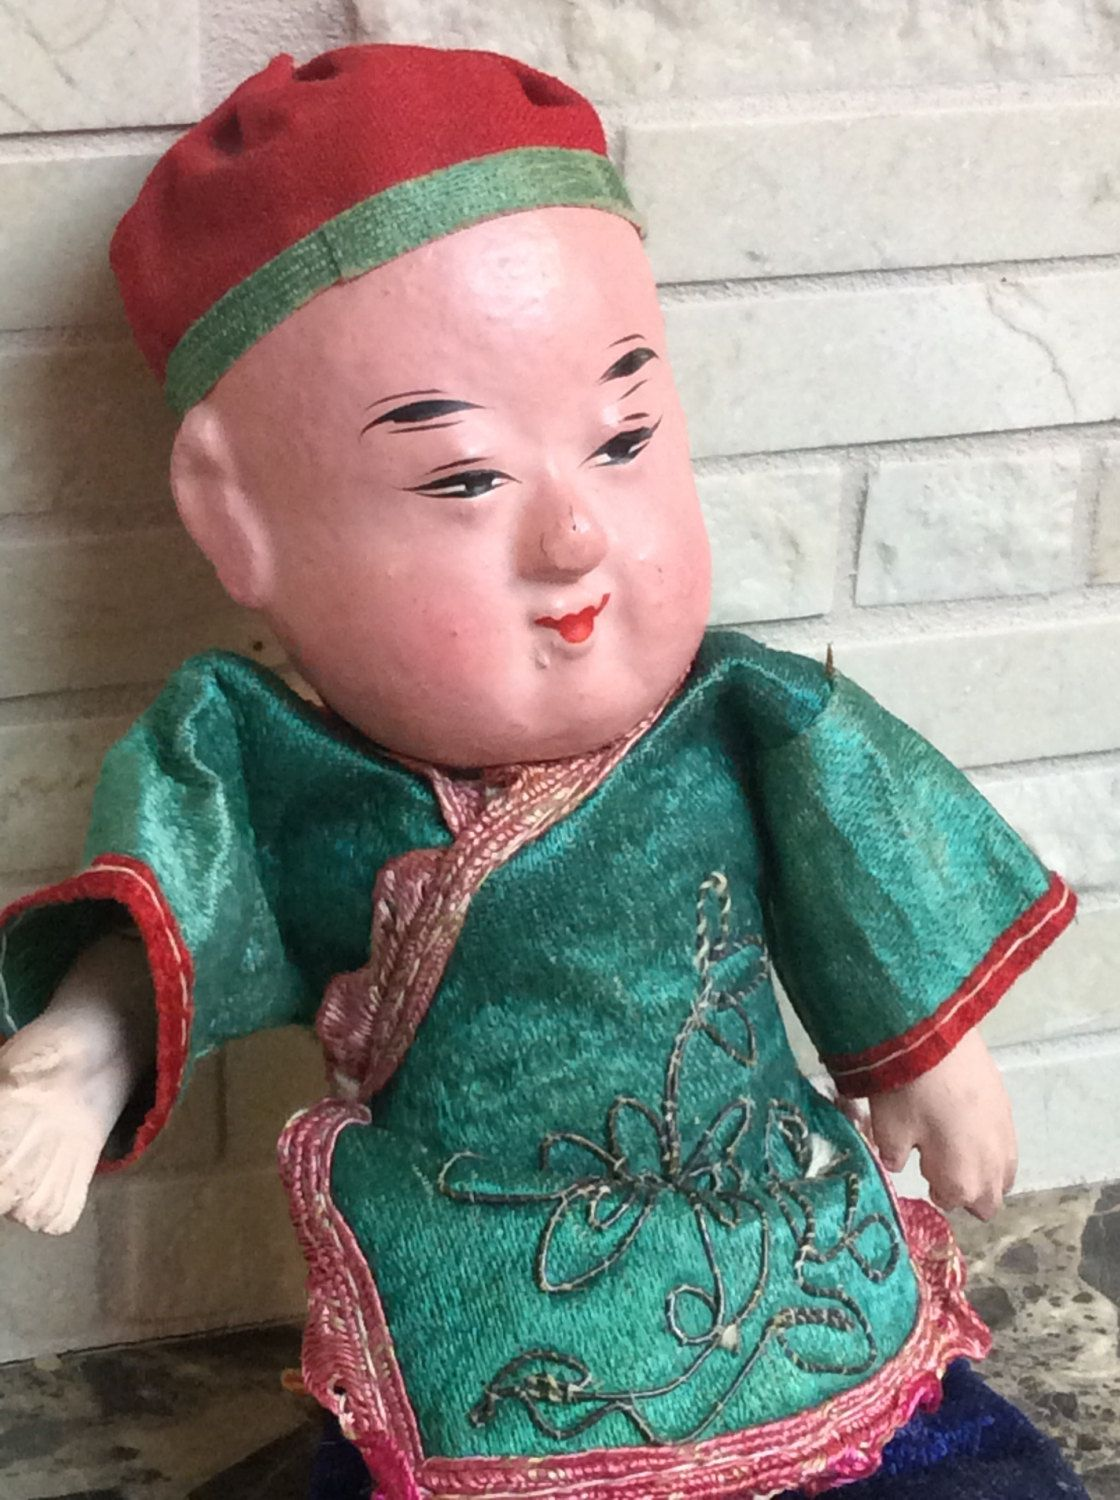 Papier Mache Asian, Vintage or Antique 8 Inch High Doll by TheHUNTantiques on Etsy